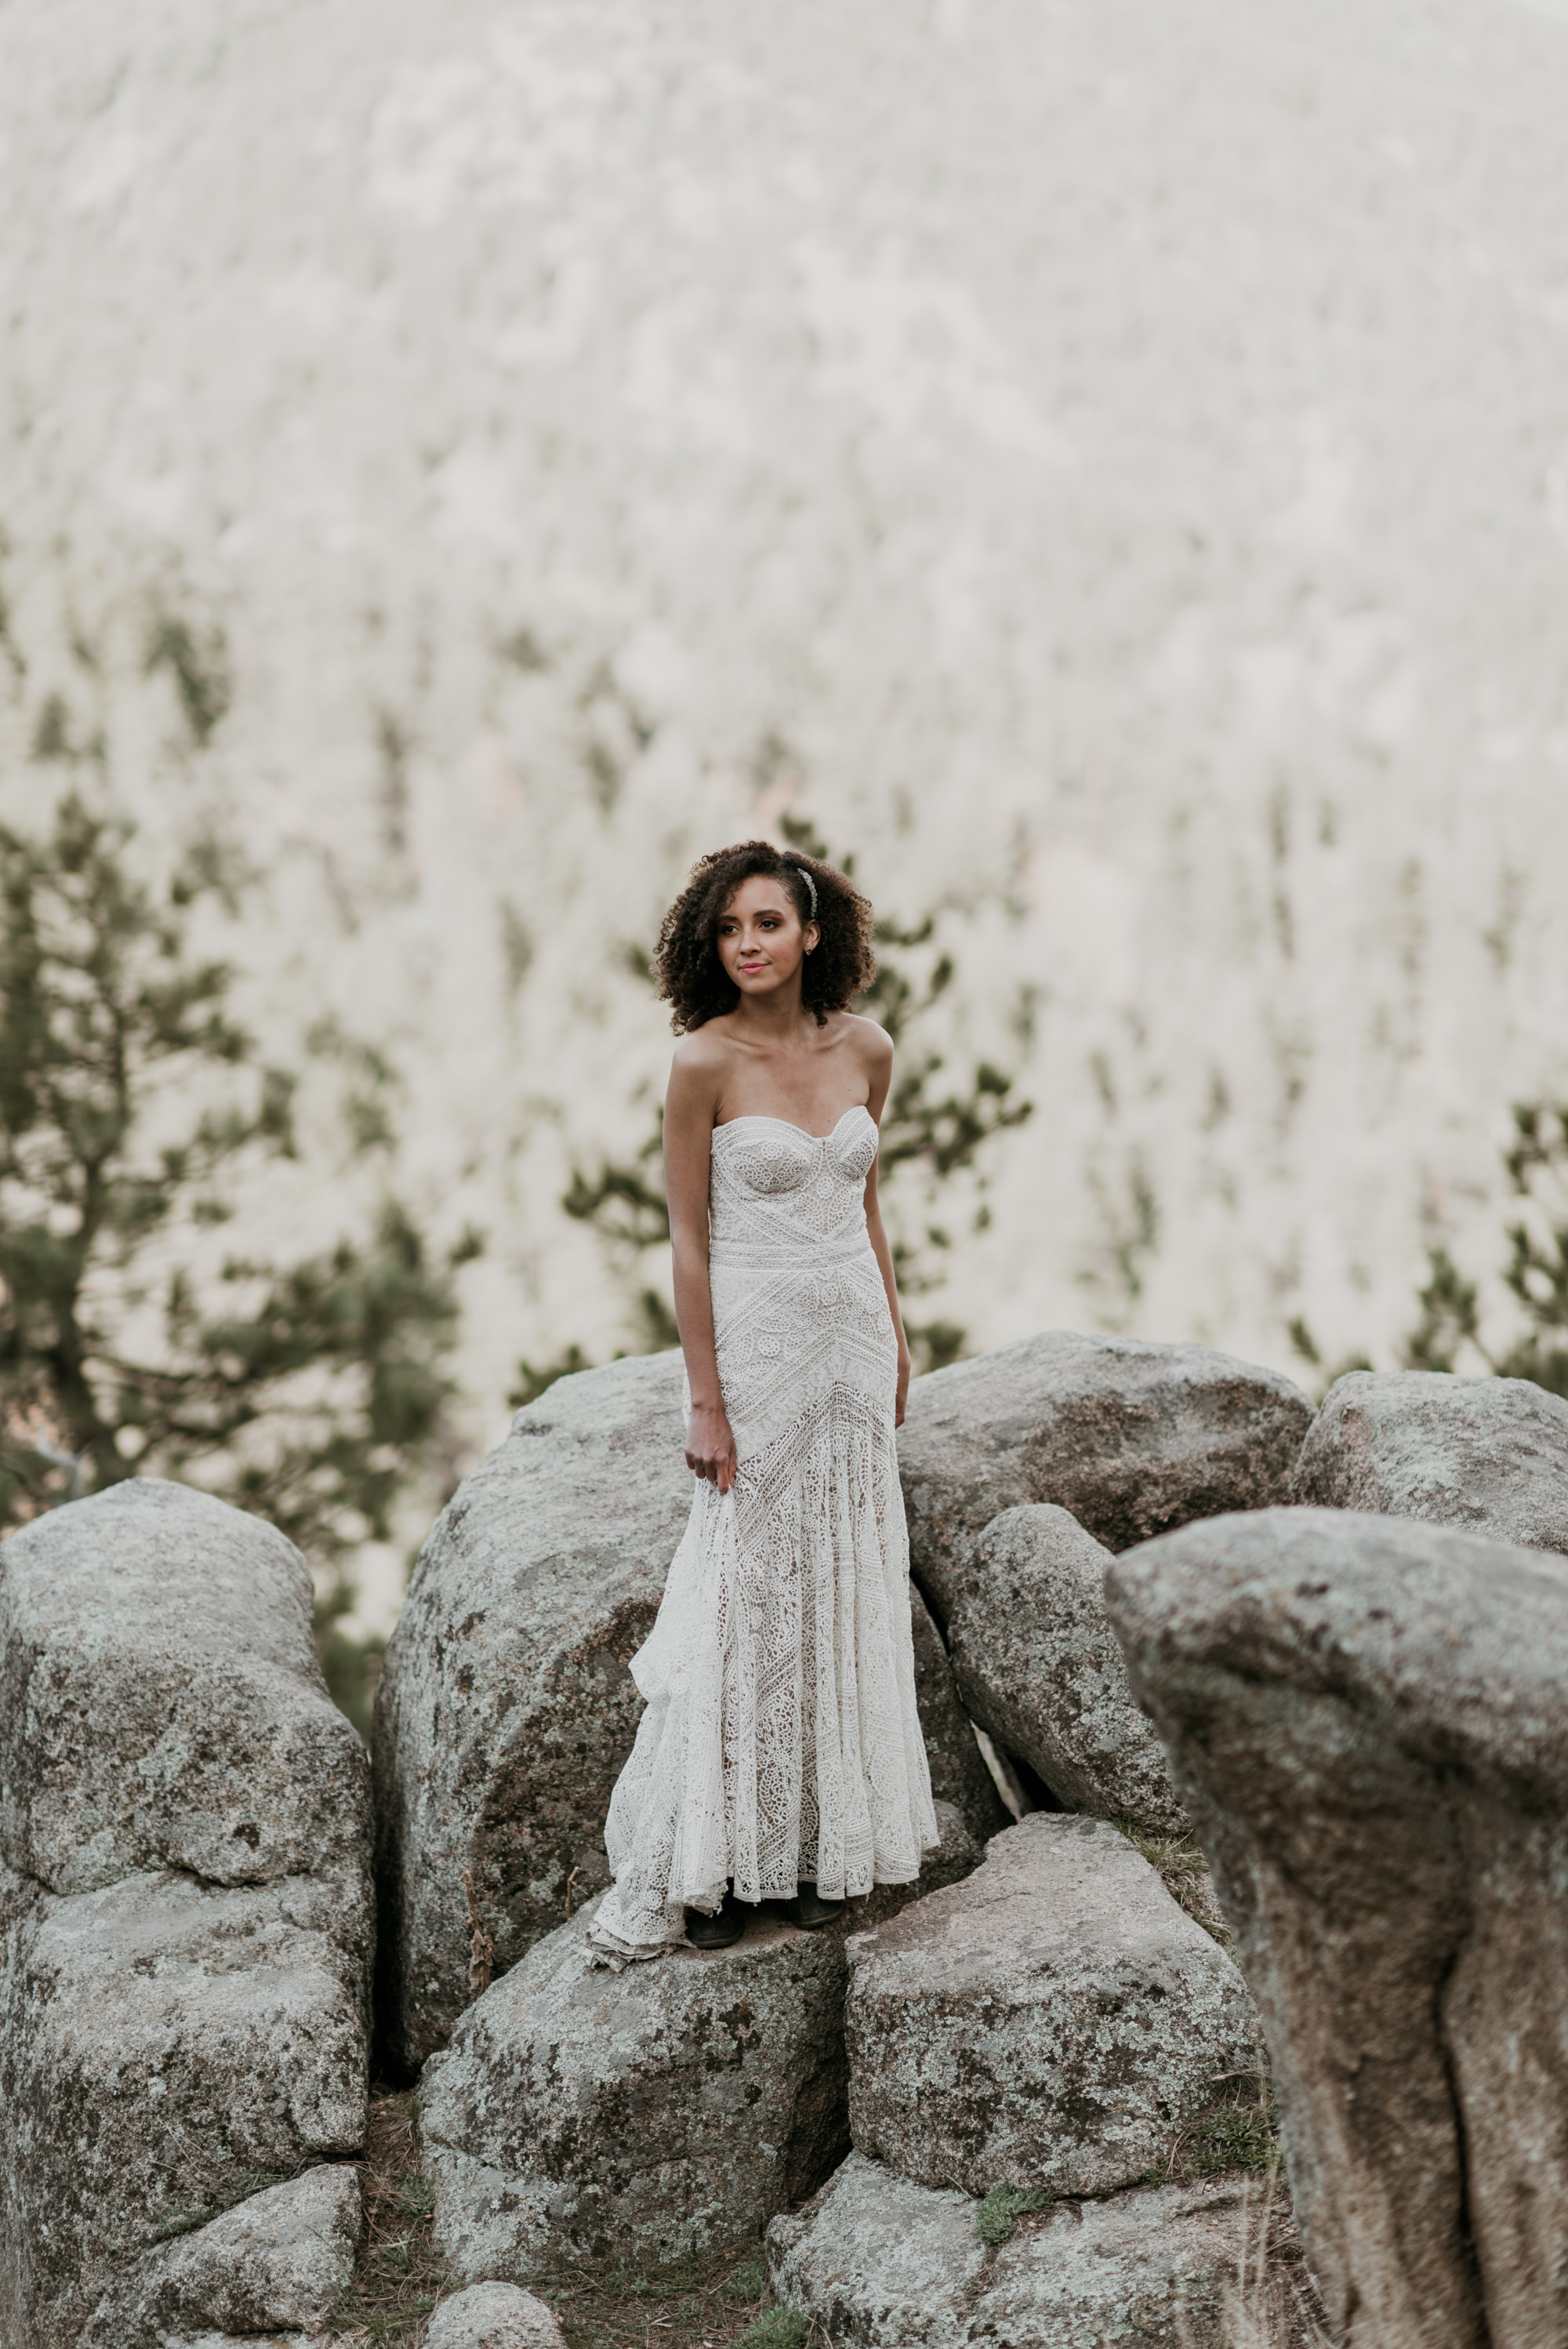 The bride wears a GORGEOUS hand made lace gown from New Zealand.